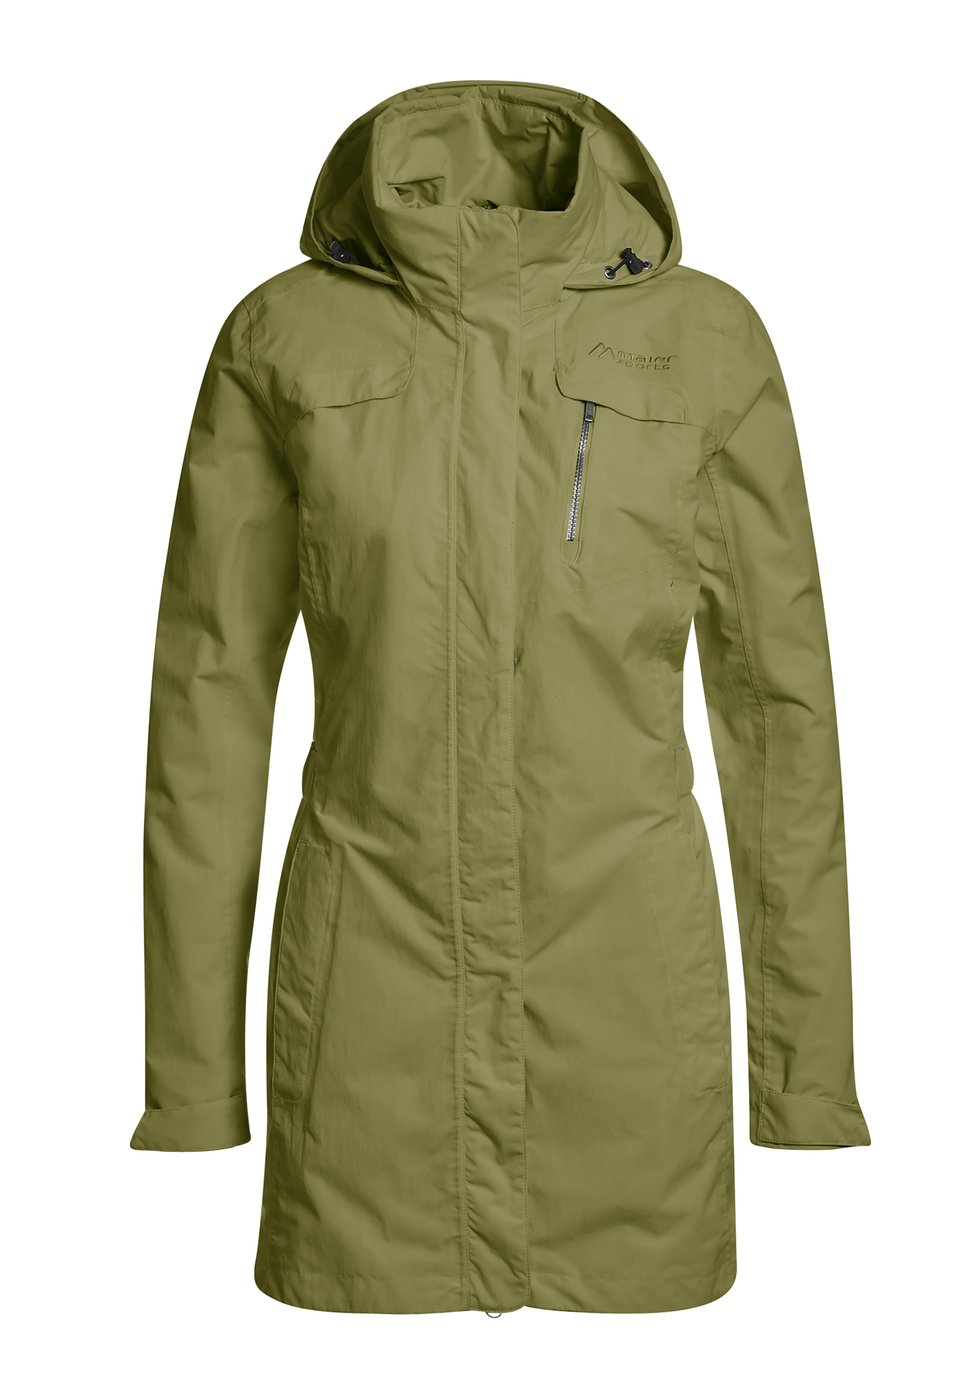 Maier Sports Damen Funktionsjacke Beaumaris - capulet olive - 40